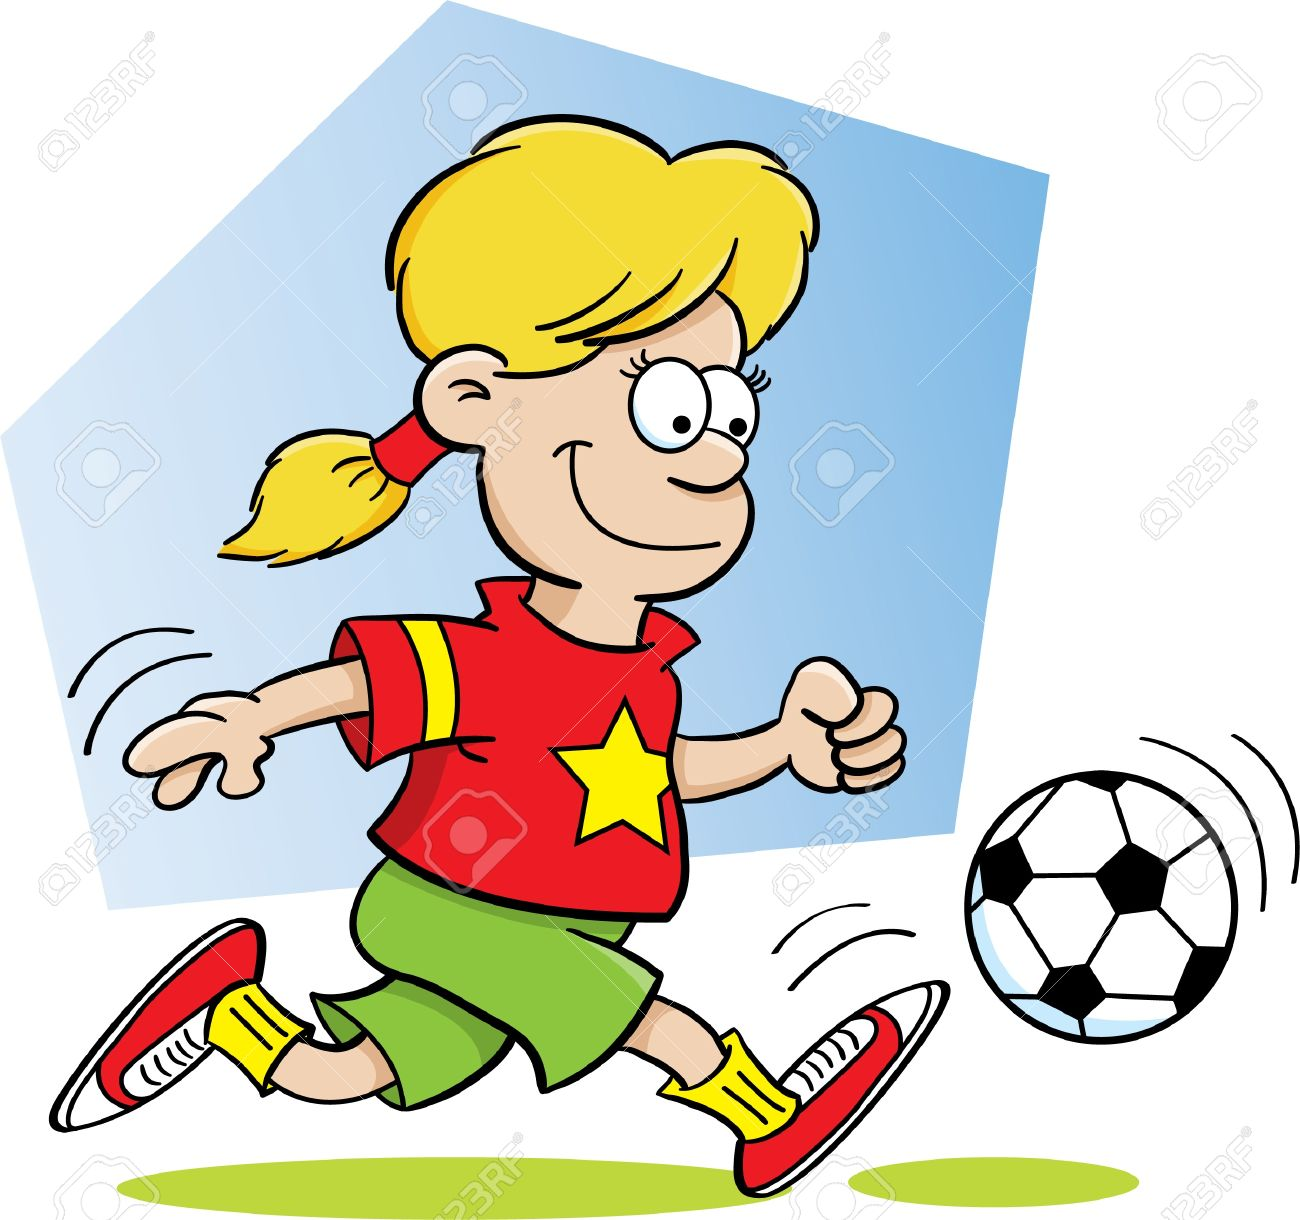 Cartoon Illustration of a Girl Playing Soccer Stock Vector - 14096431